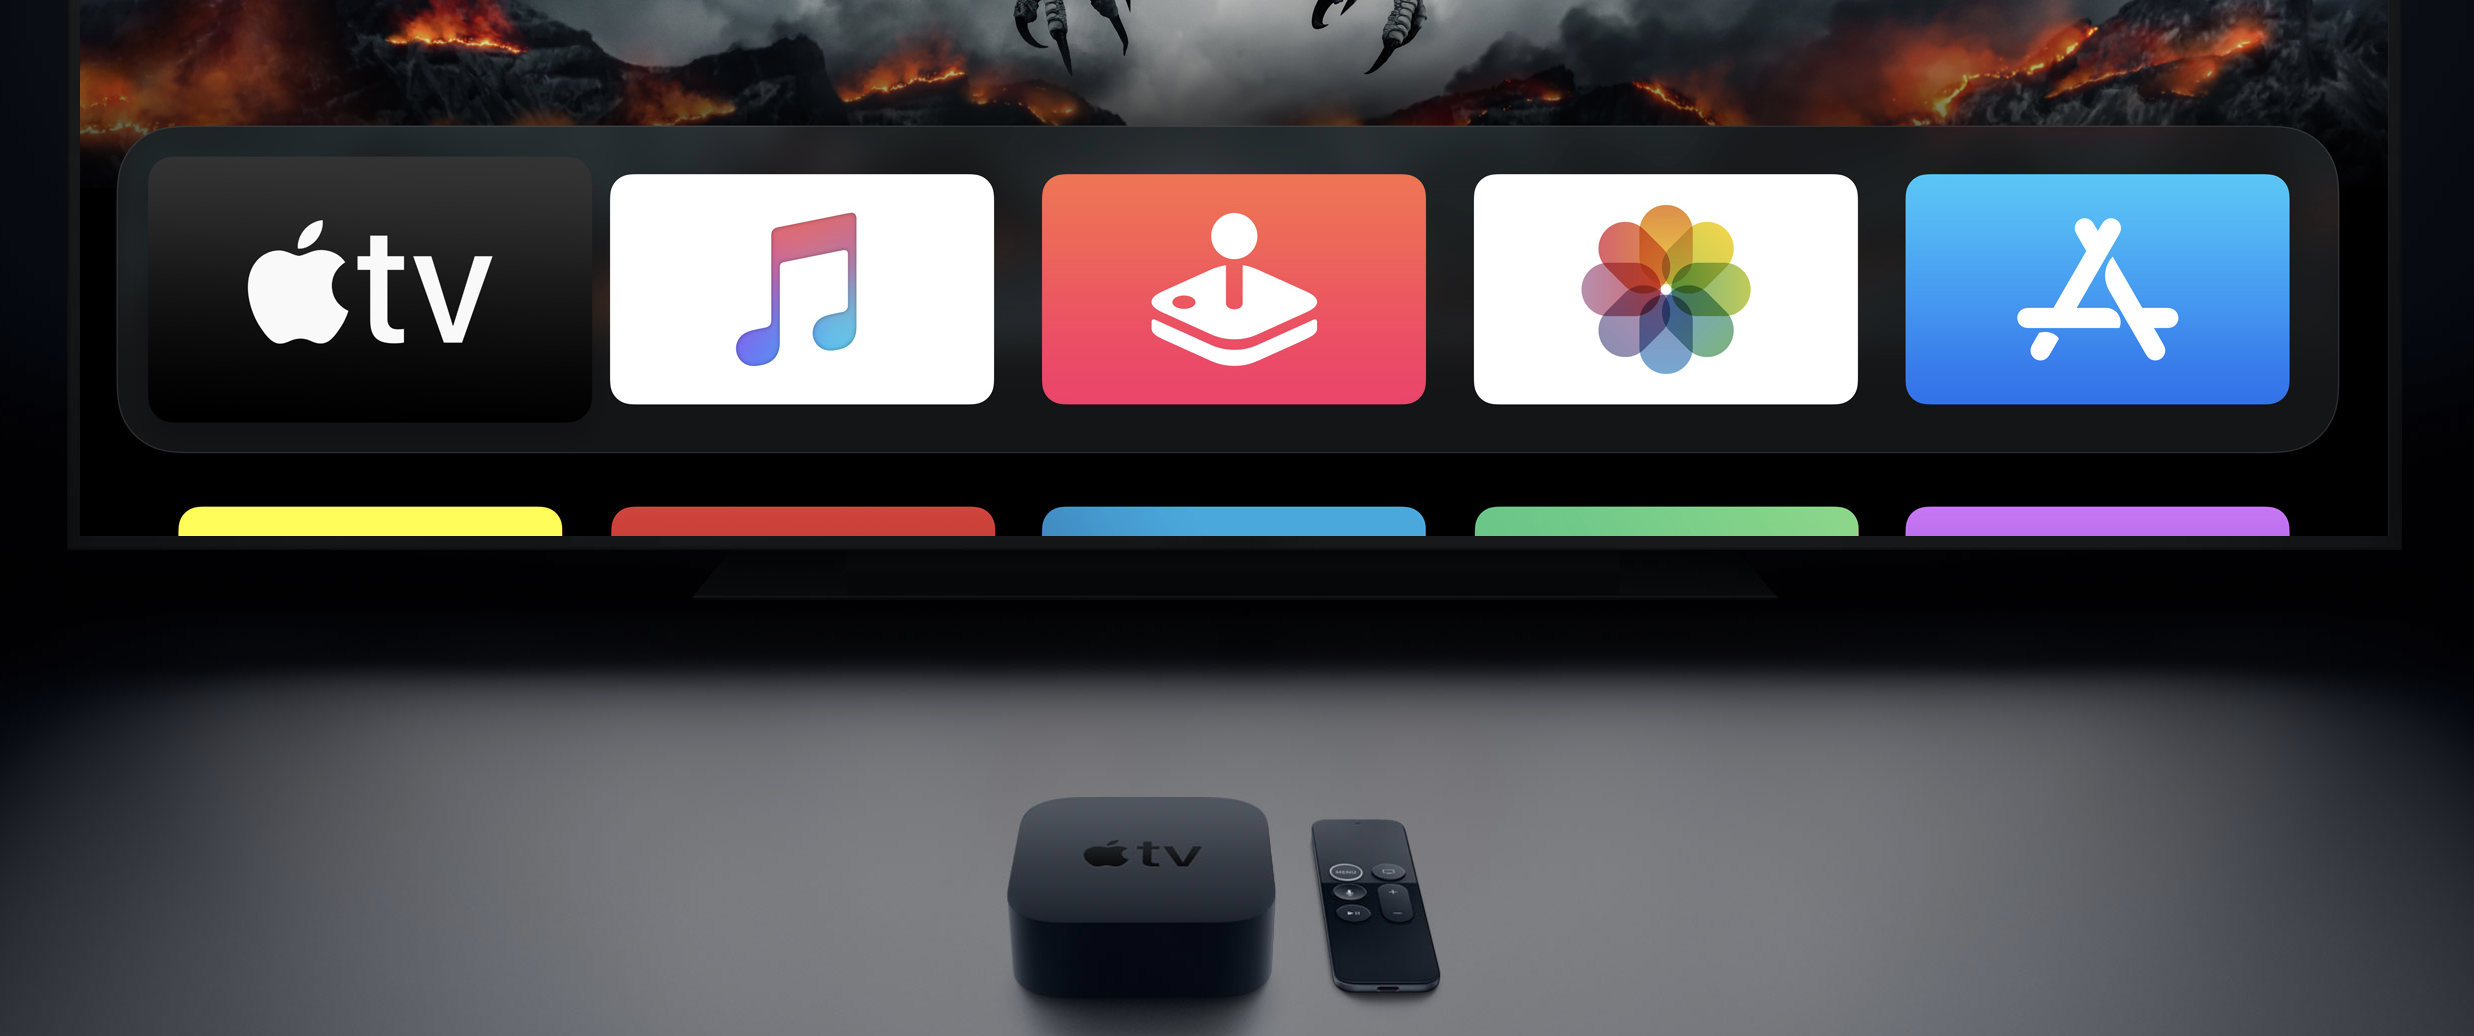 Apple TV 6, Everything We Currently Know | by Yash Patak | Mac O'Clock |  Mar, 2021